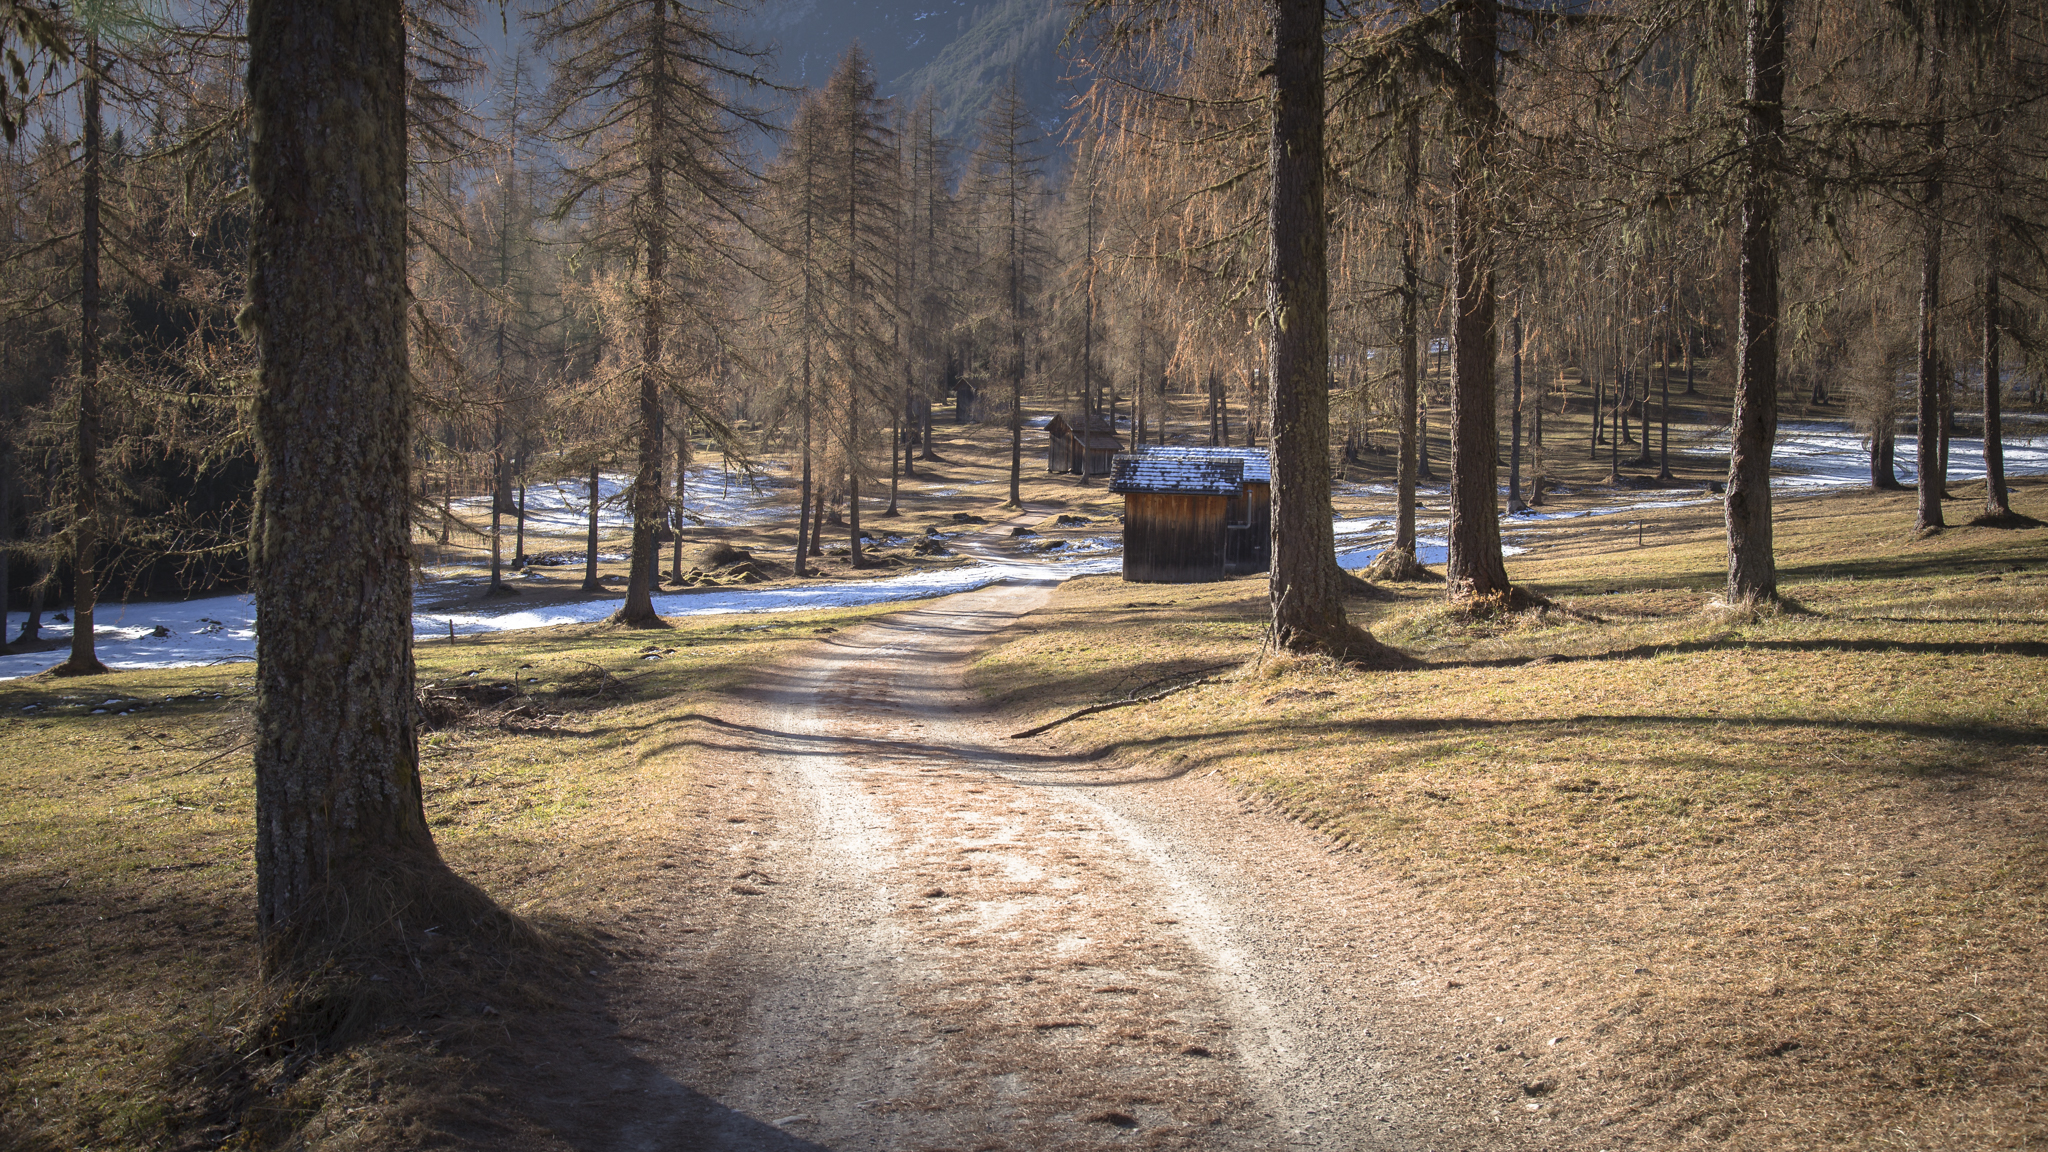 Rather than being covered in snow the Dolomites were still basking in the suns glow this december.